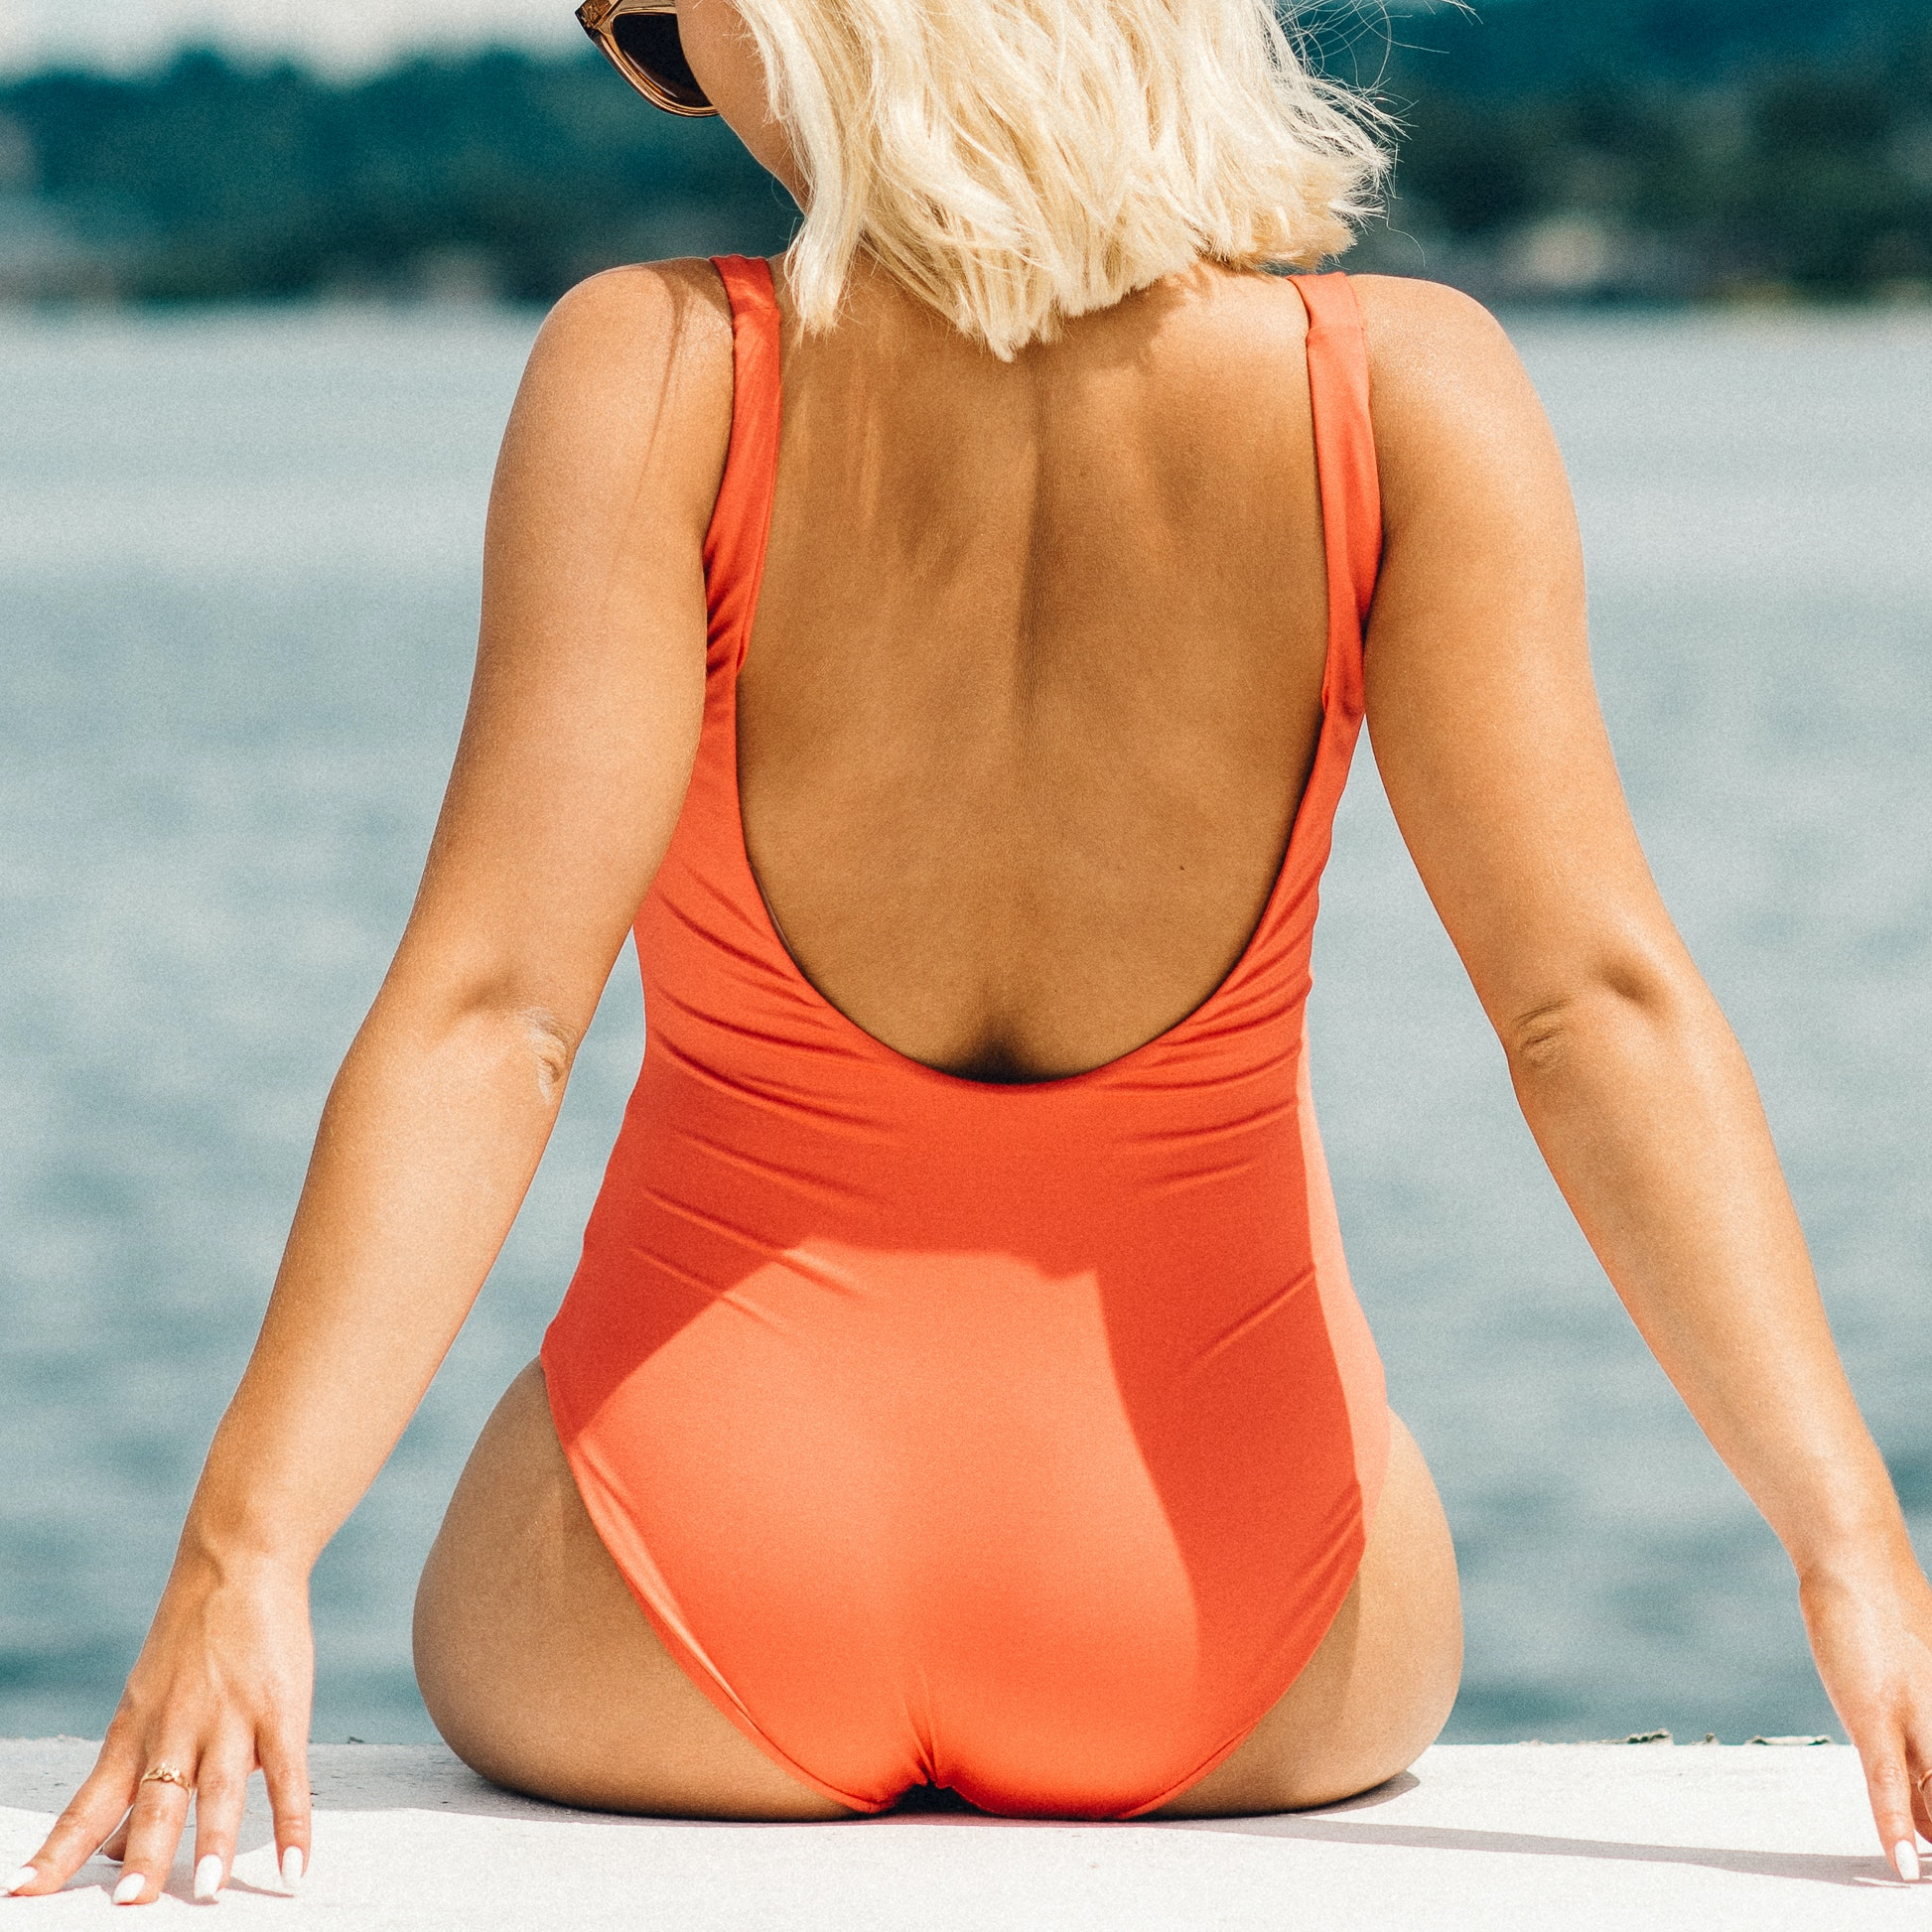 Bottoms Up: 6 Creams That Target Your Top Tush Concerns